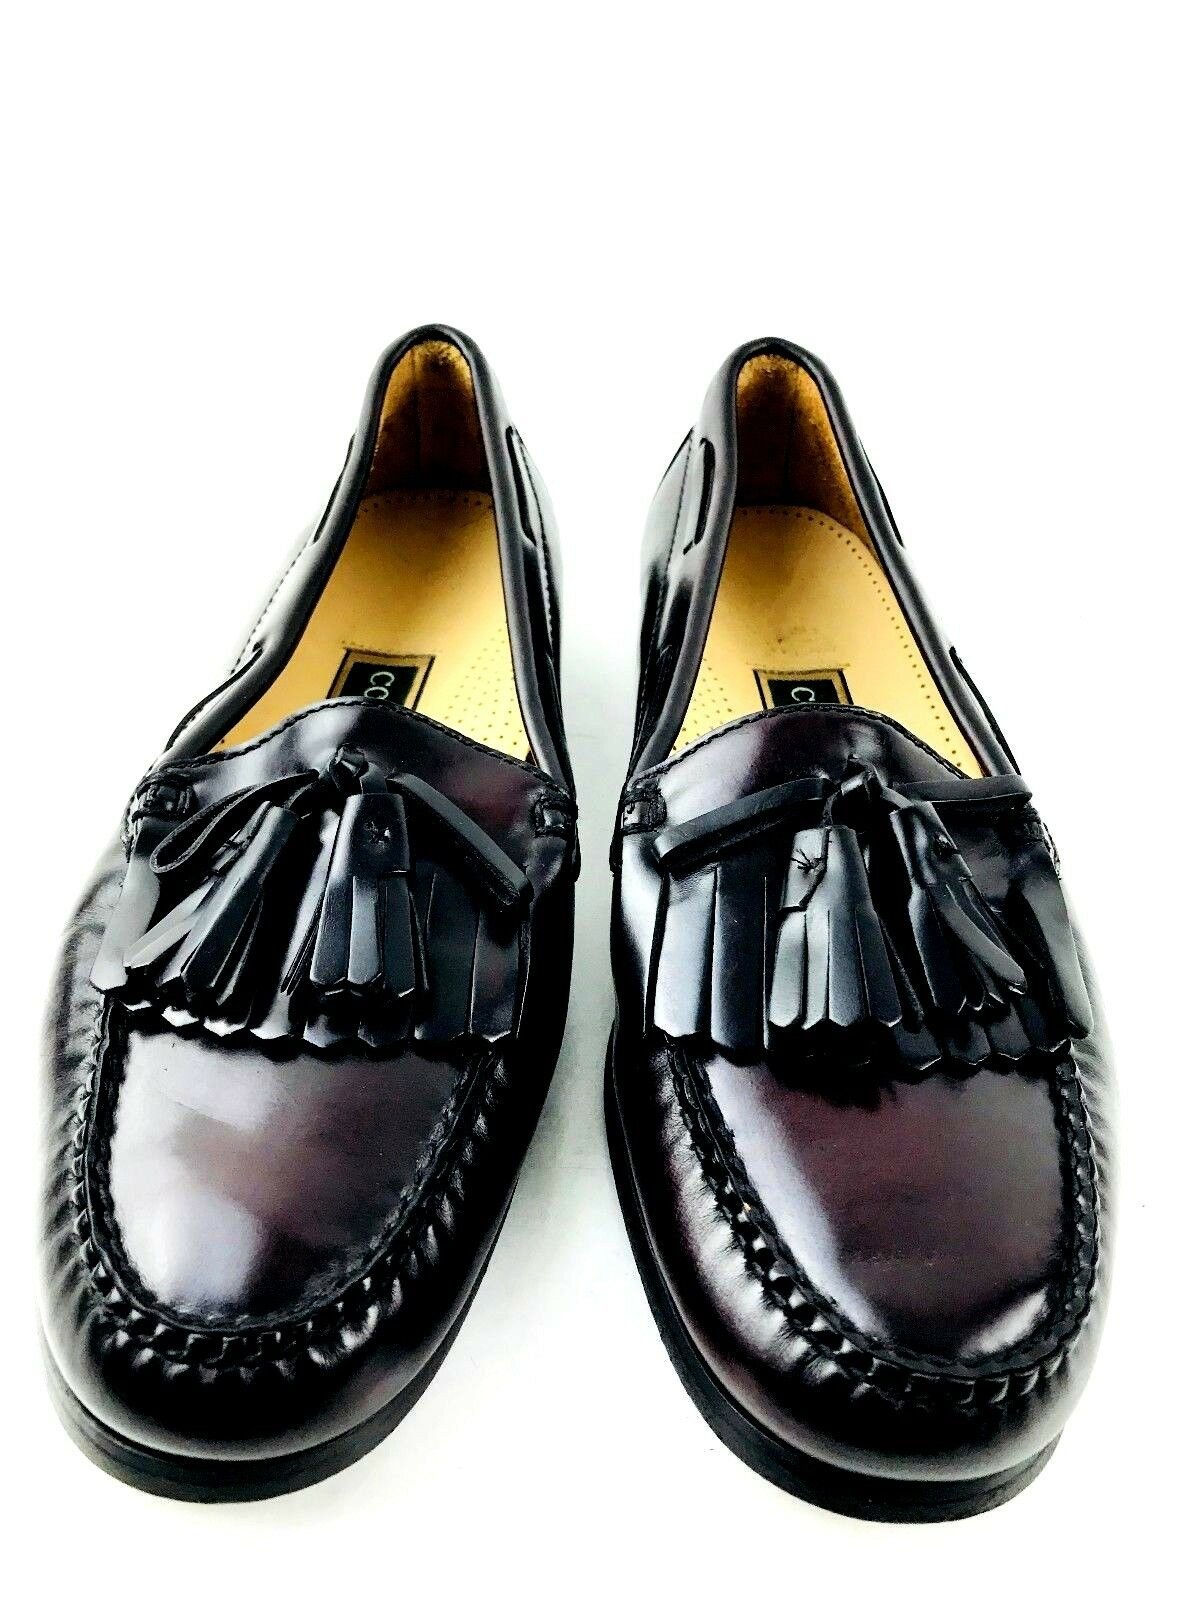 Cole Haan Kiltie Tassel Burgundy Loafer Größe US.8.5 UK.8 EU